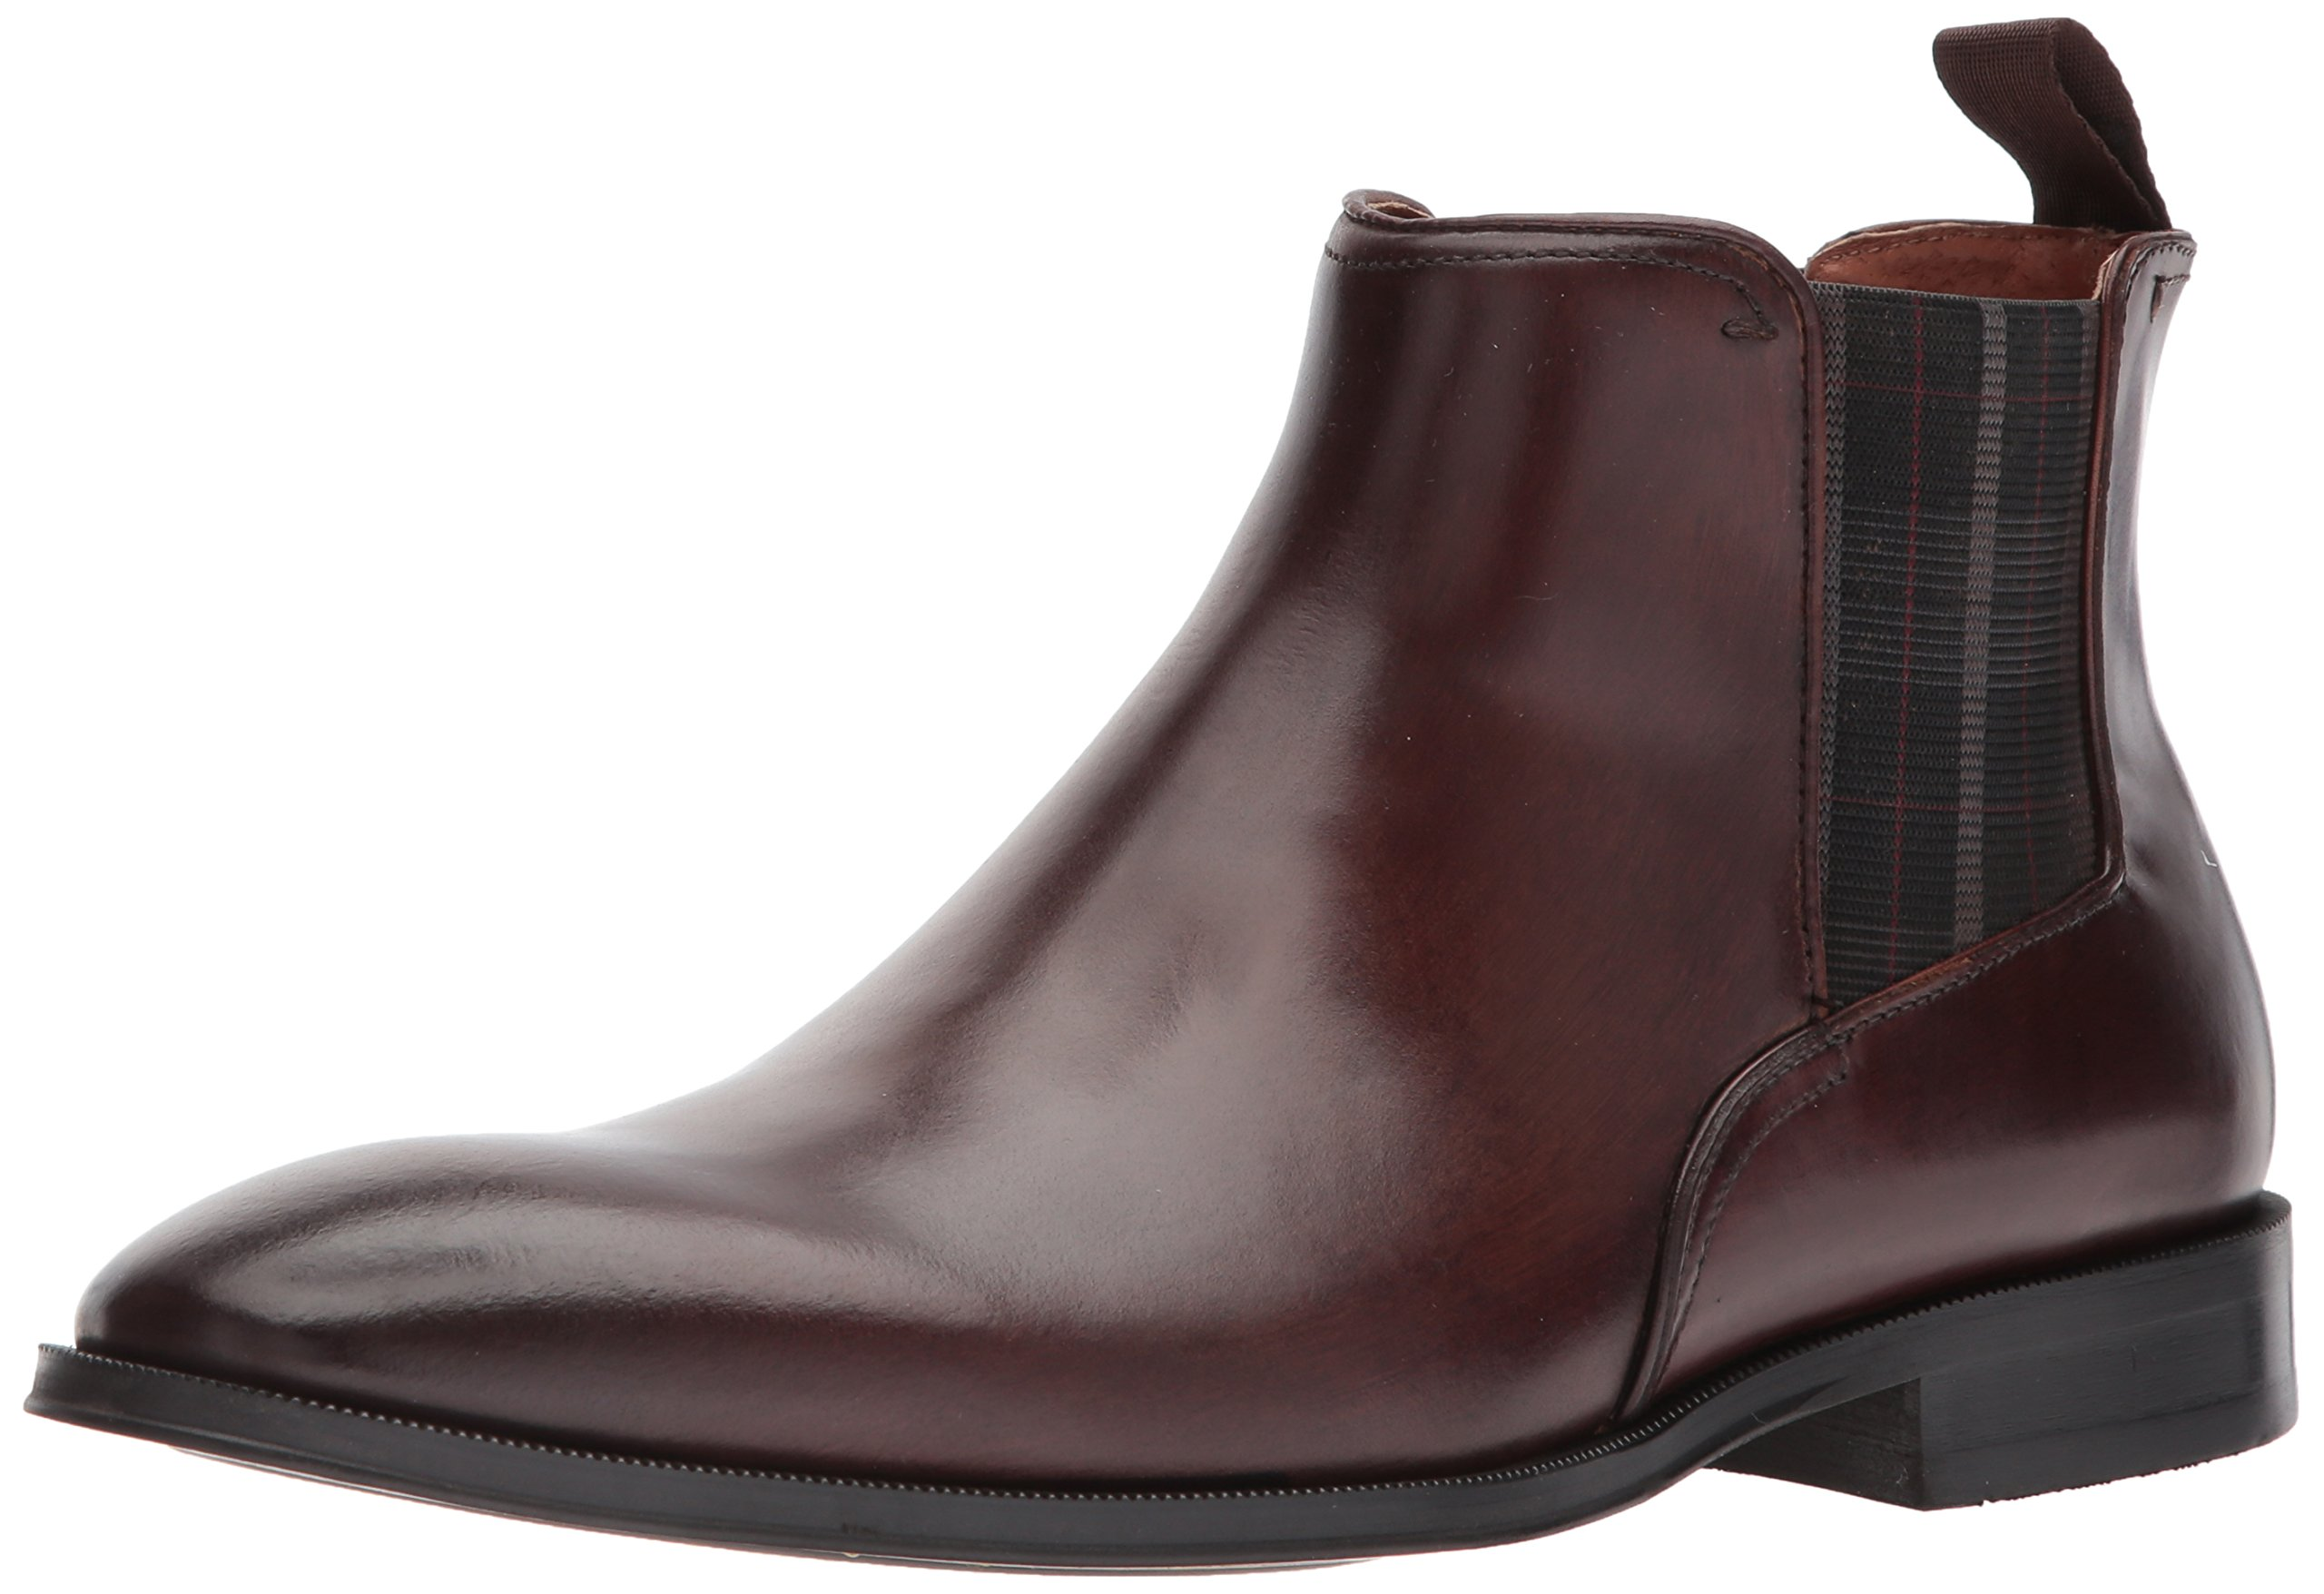 Florsheim Men's Belfast Plain Toe Gore Chelsea Boot, Brown, 9 D US by Florsheim